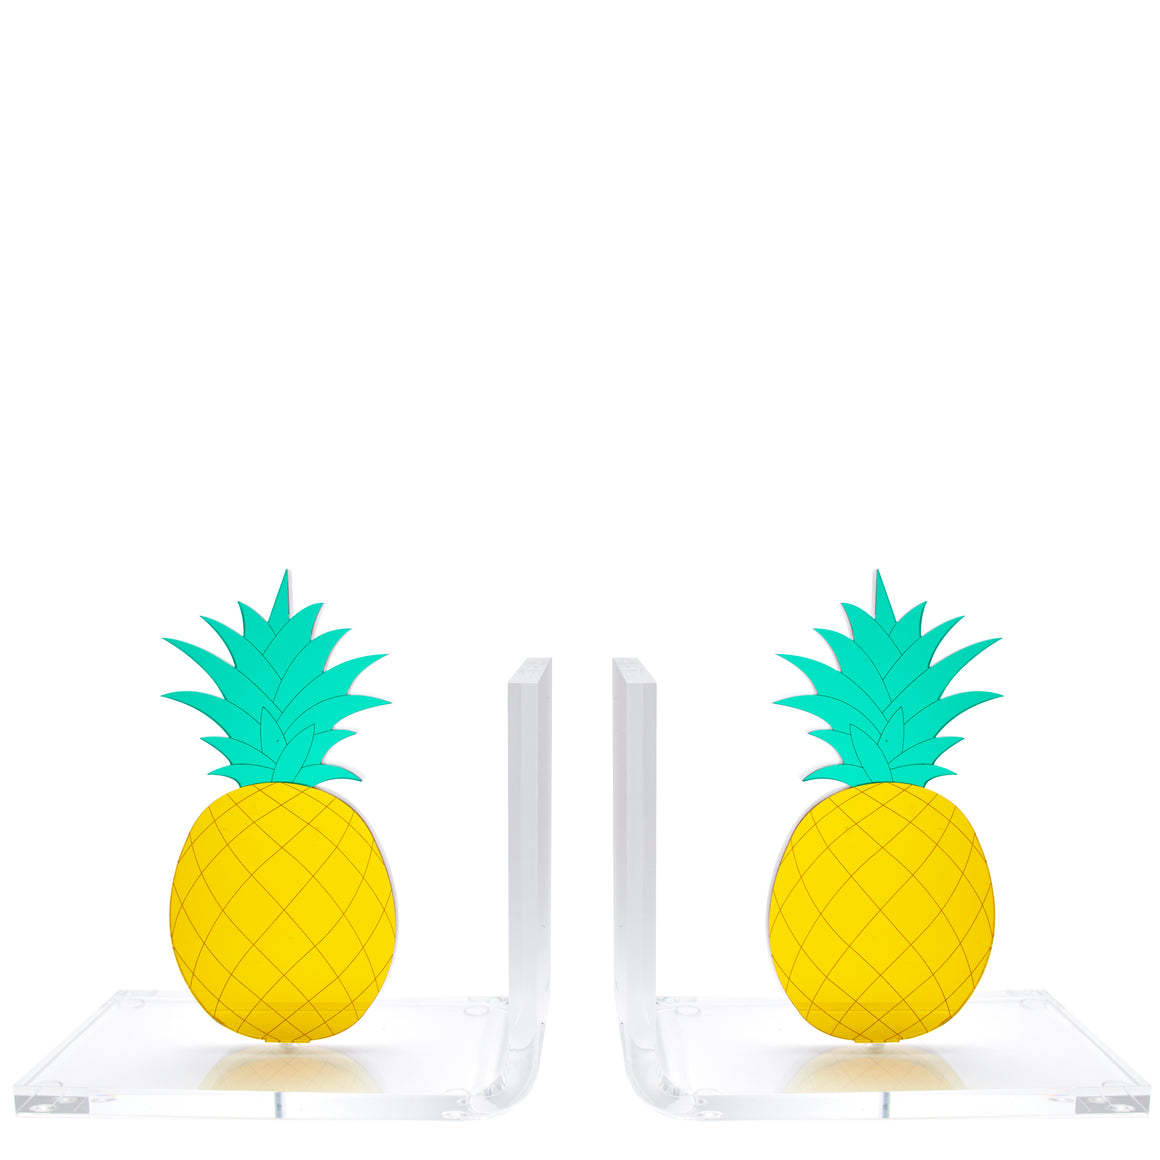 Mirrored Pineapple bookends